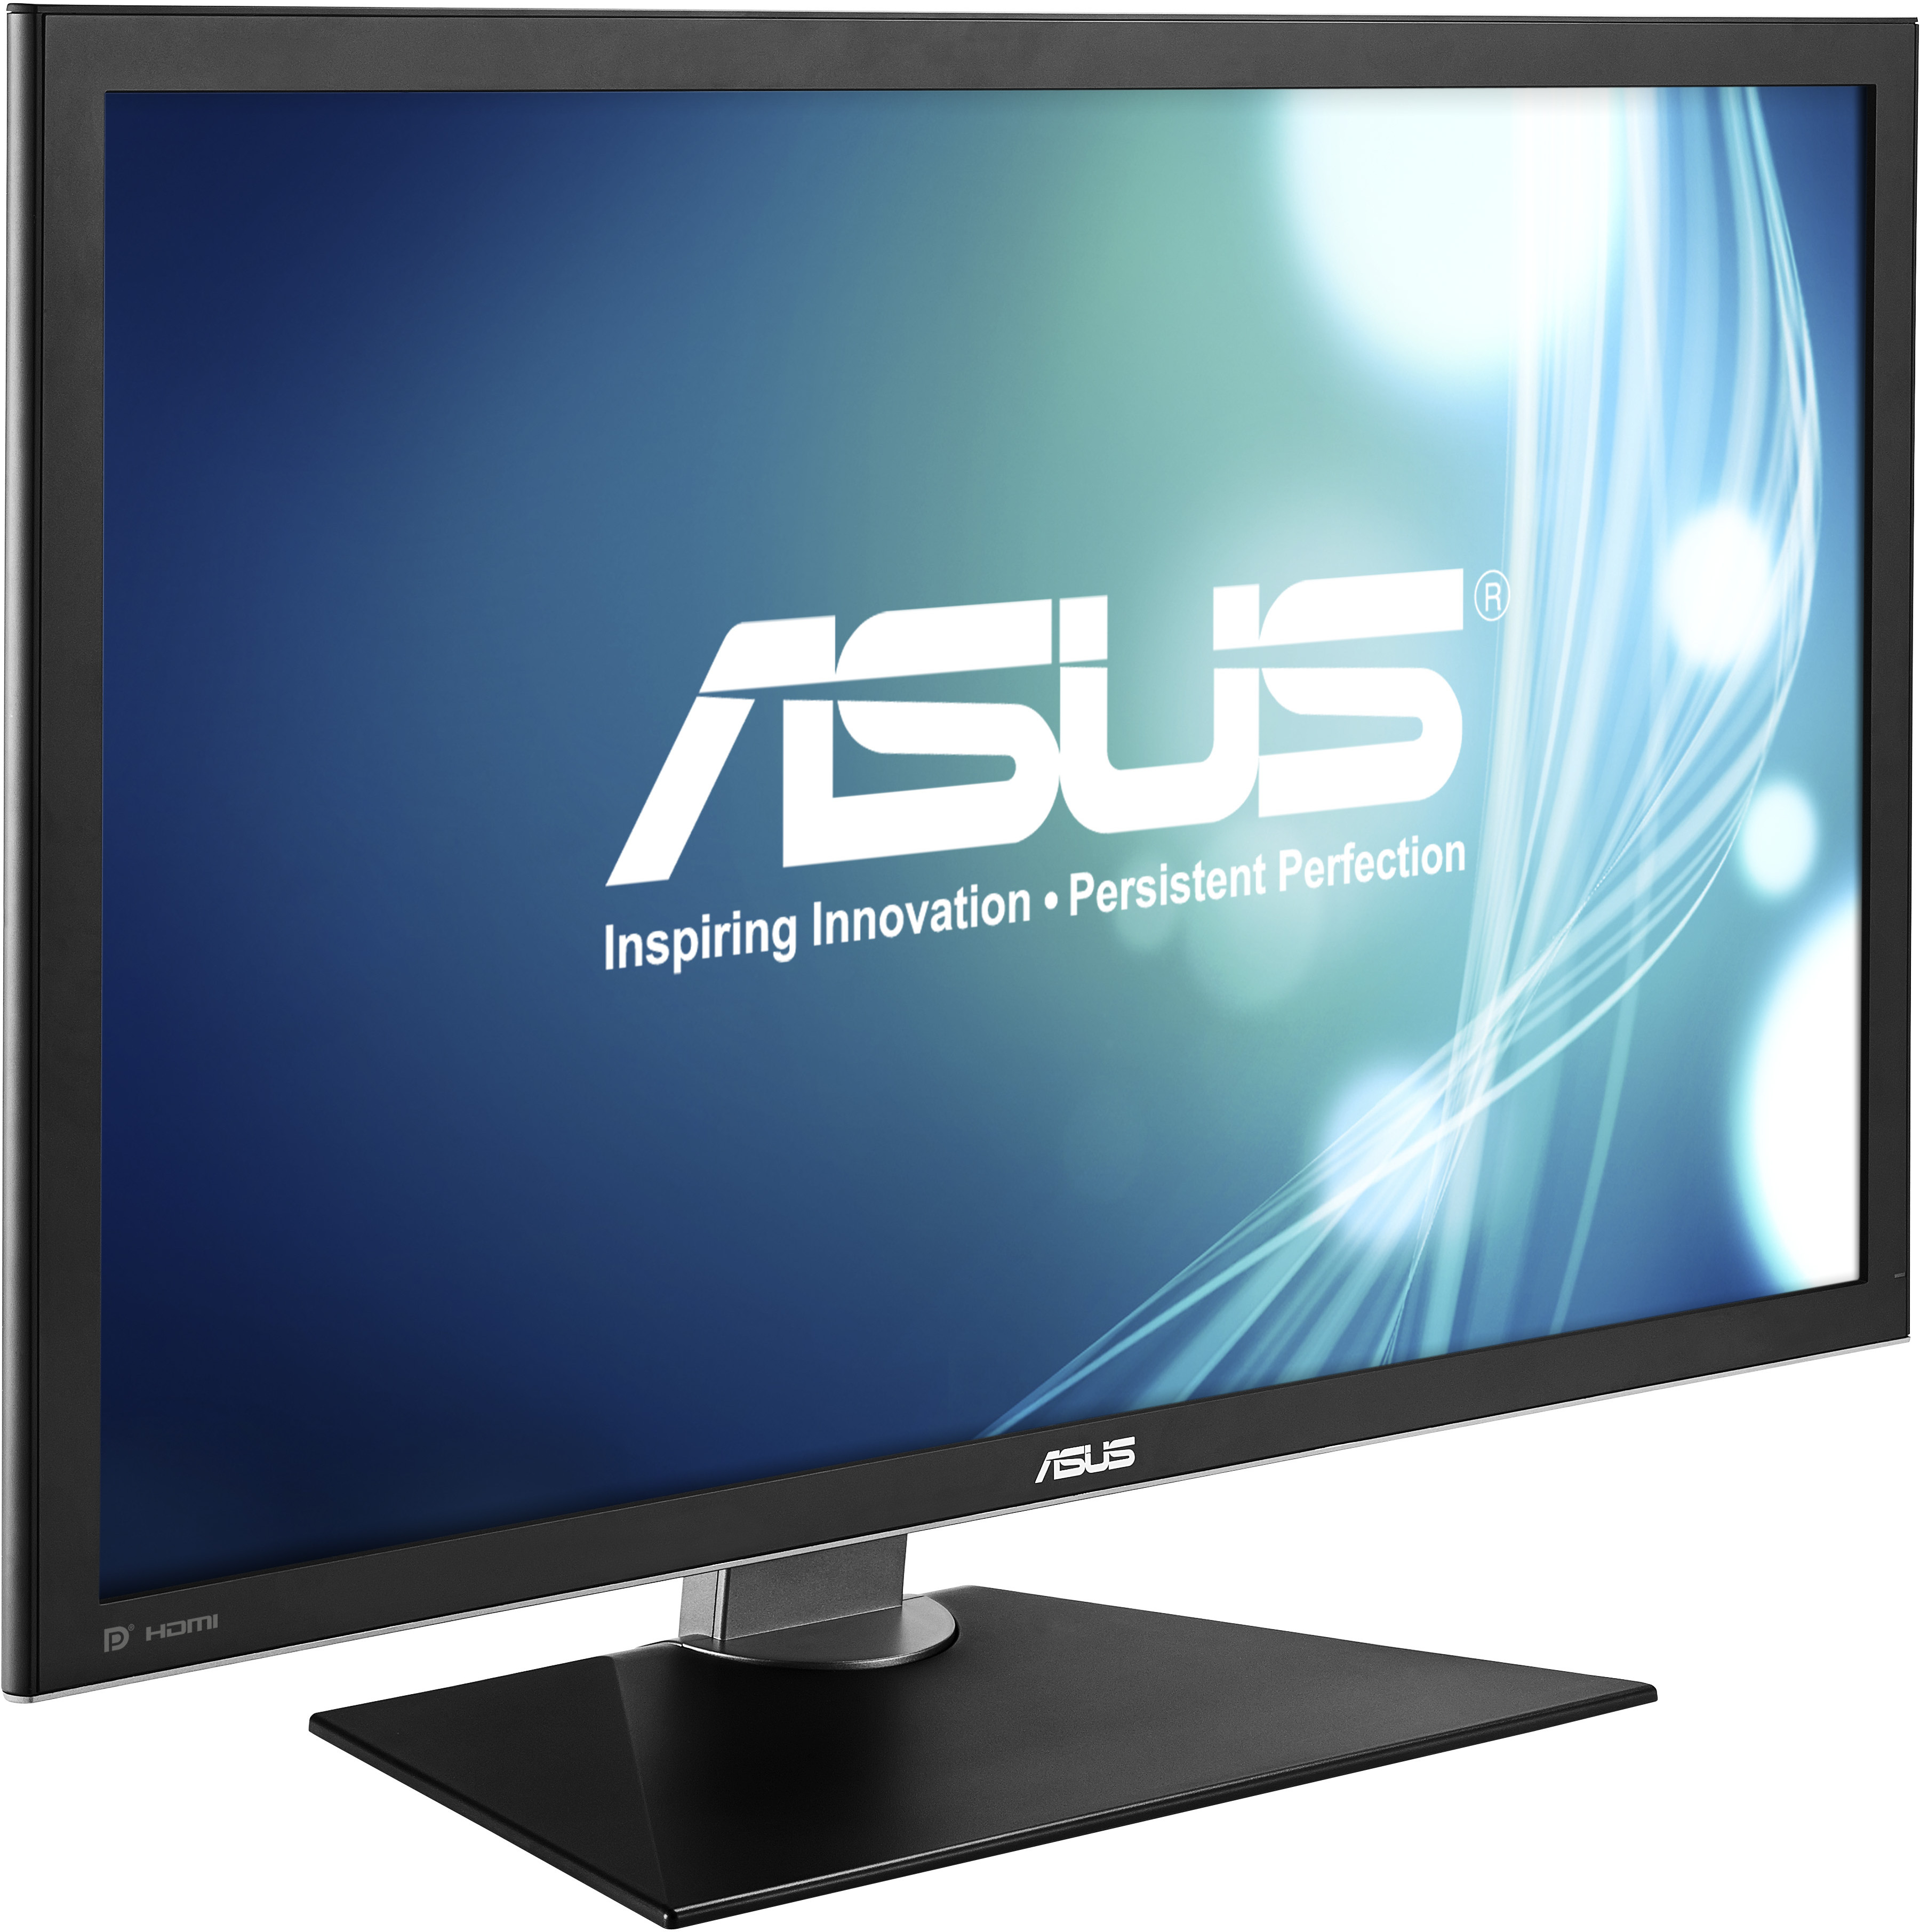 ASUS Launches PQ321 Monitor with 3840 x 2160 IGZO Display   TechPowerUp